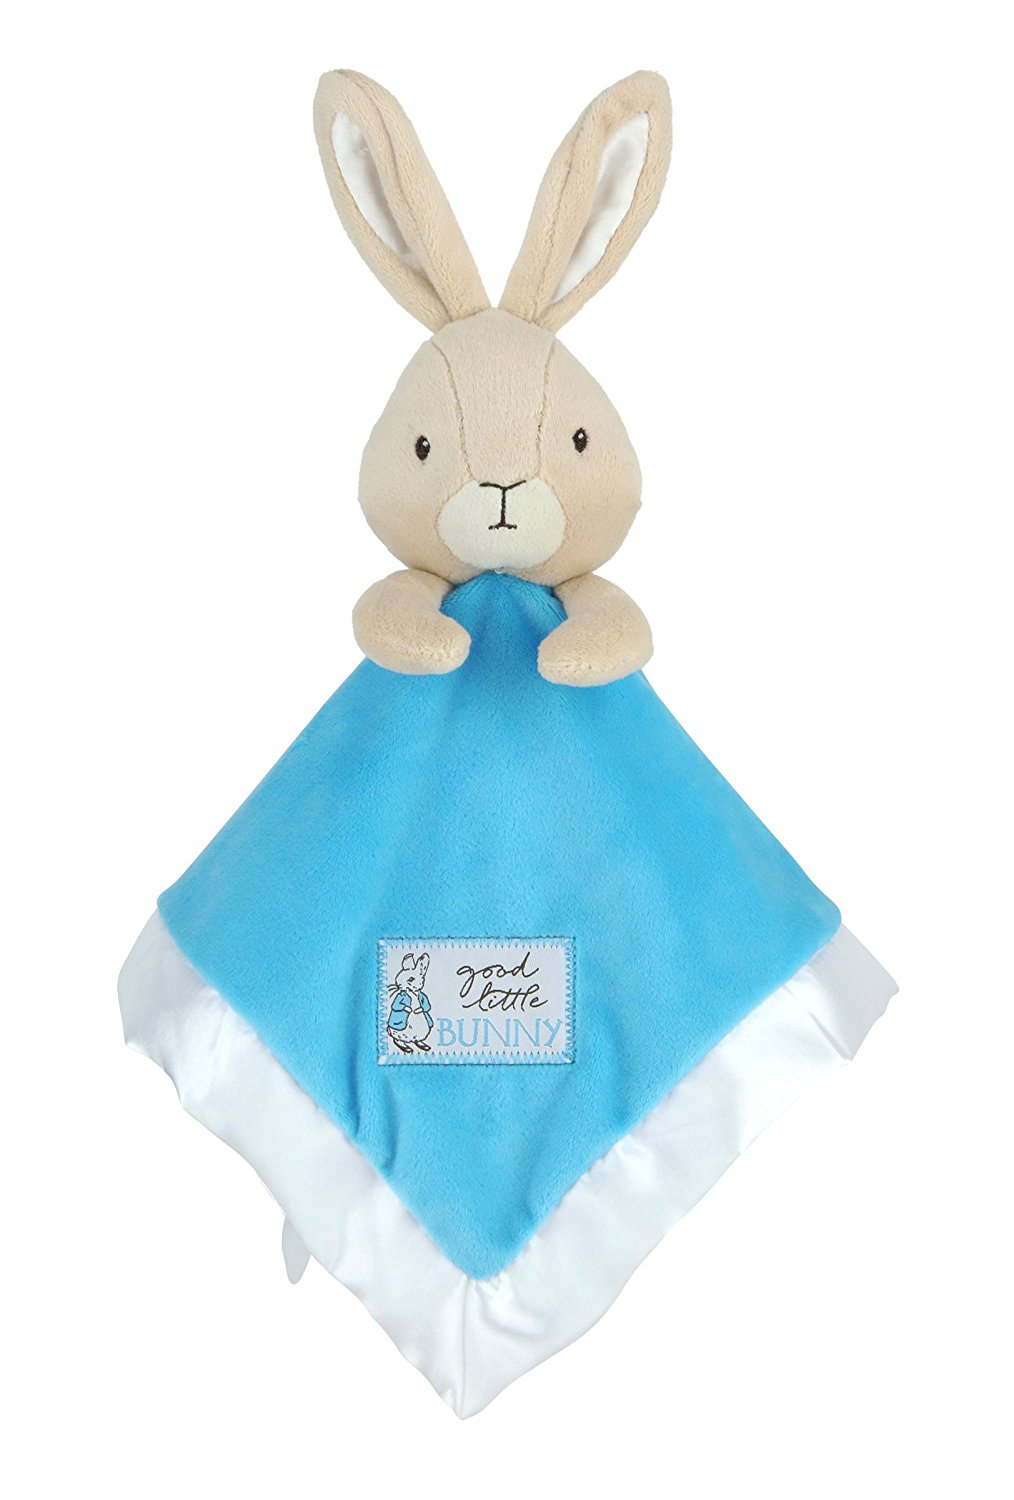 Kids Preferred Beatrix Potter Peter Rabbit Security Blanket Plush Lovey, Lovie